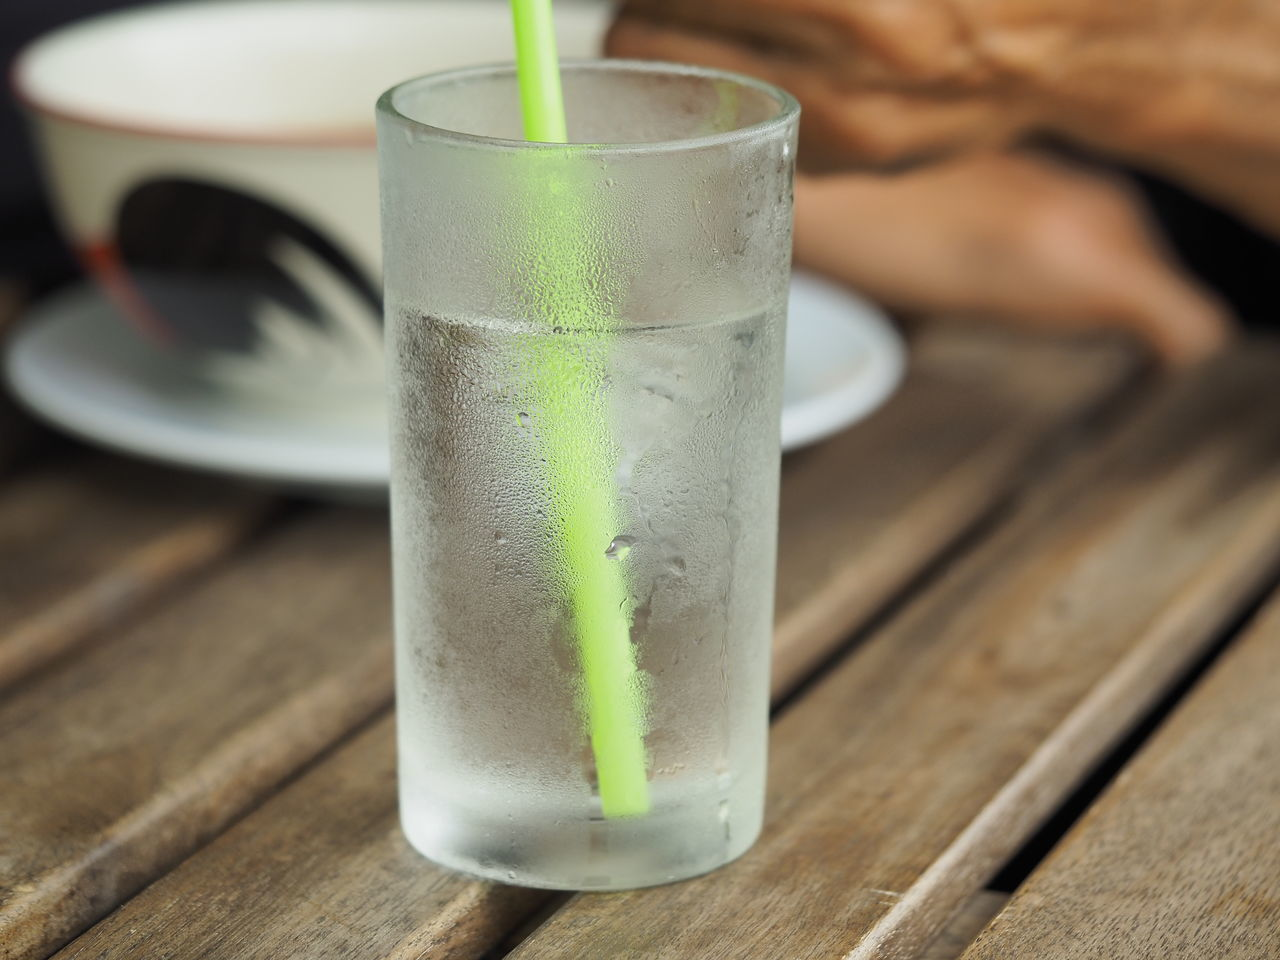 drink, refreshment, table, drinking glass, drinking straw, food and drink, focus on foreground, close-up, freshness, wood - material, indoors, green color, no people, healthy eating, day